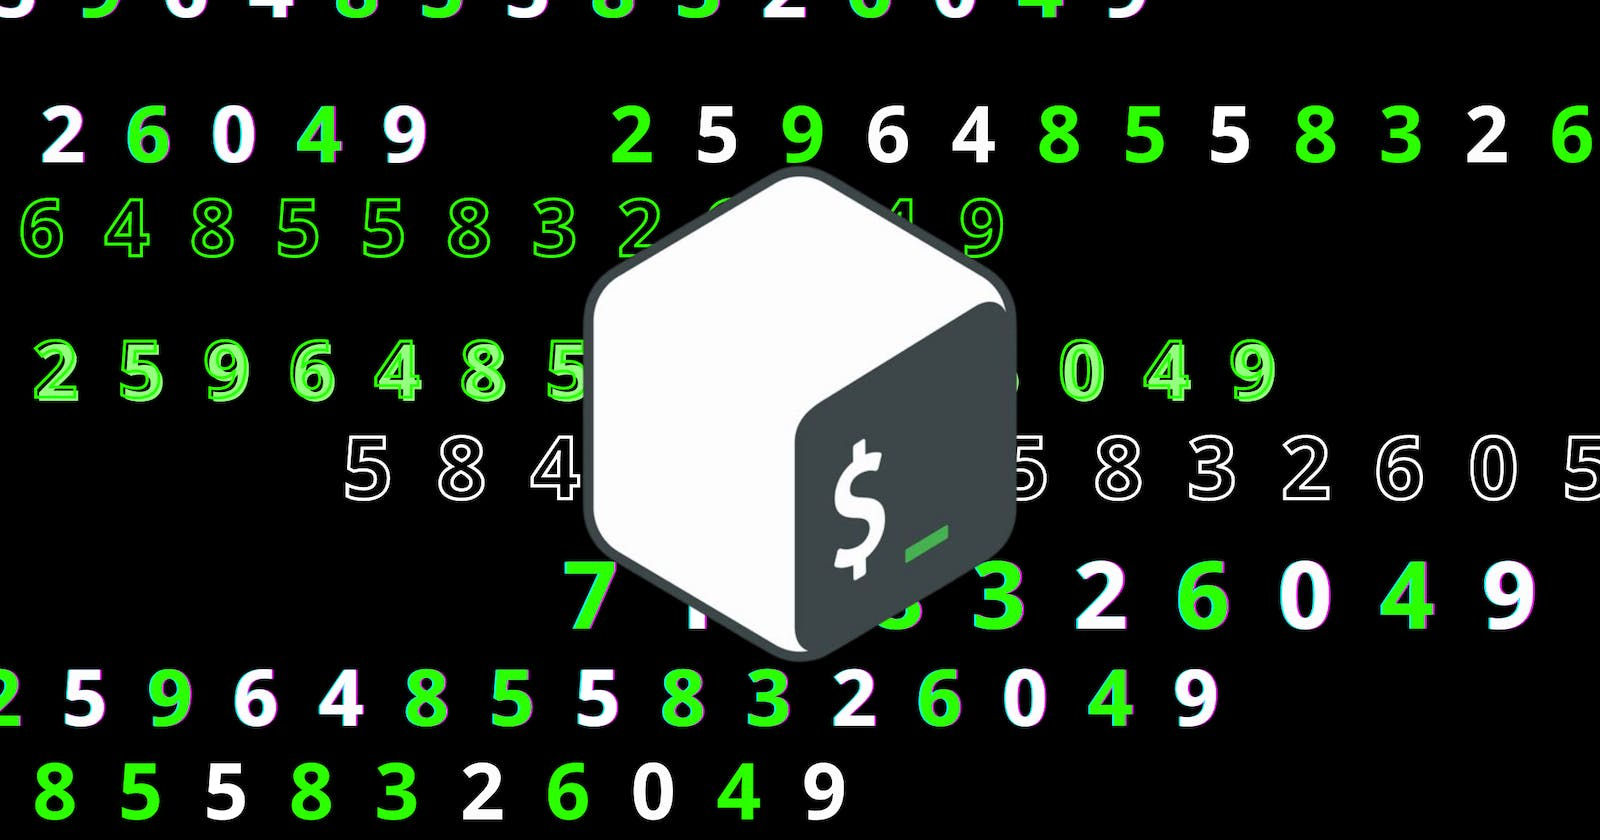 Learn BASH by making a Number Game